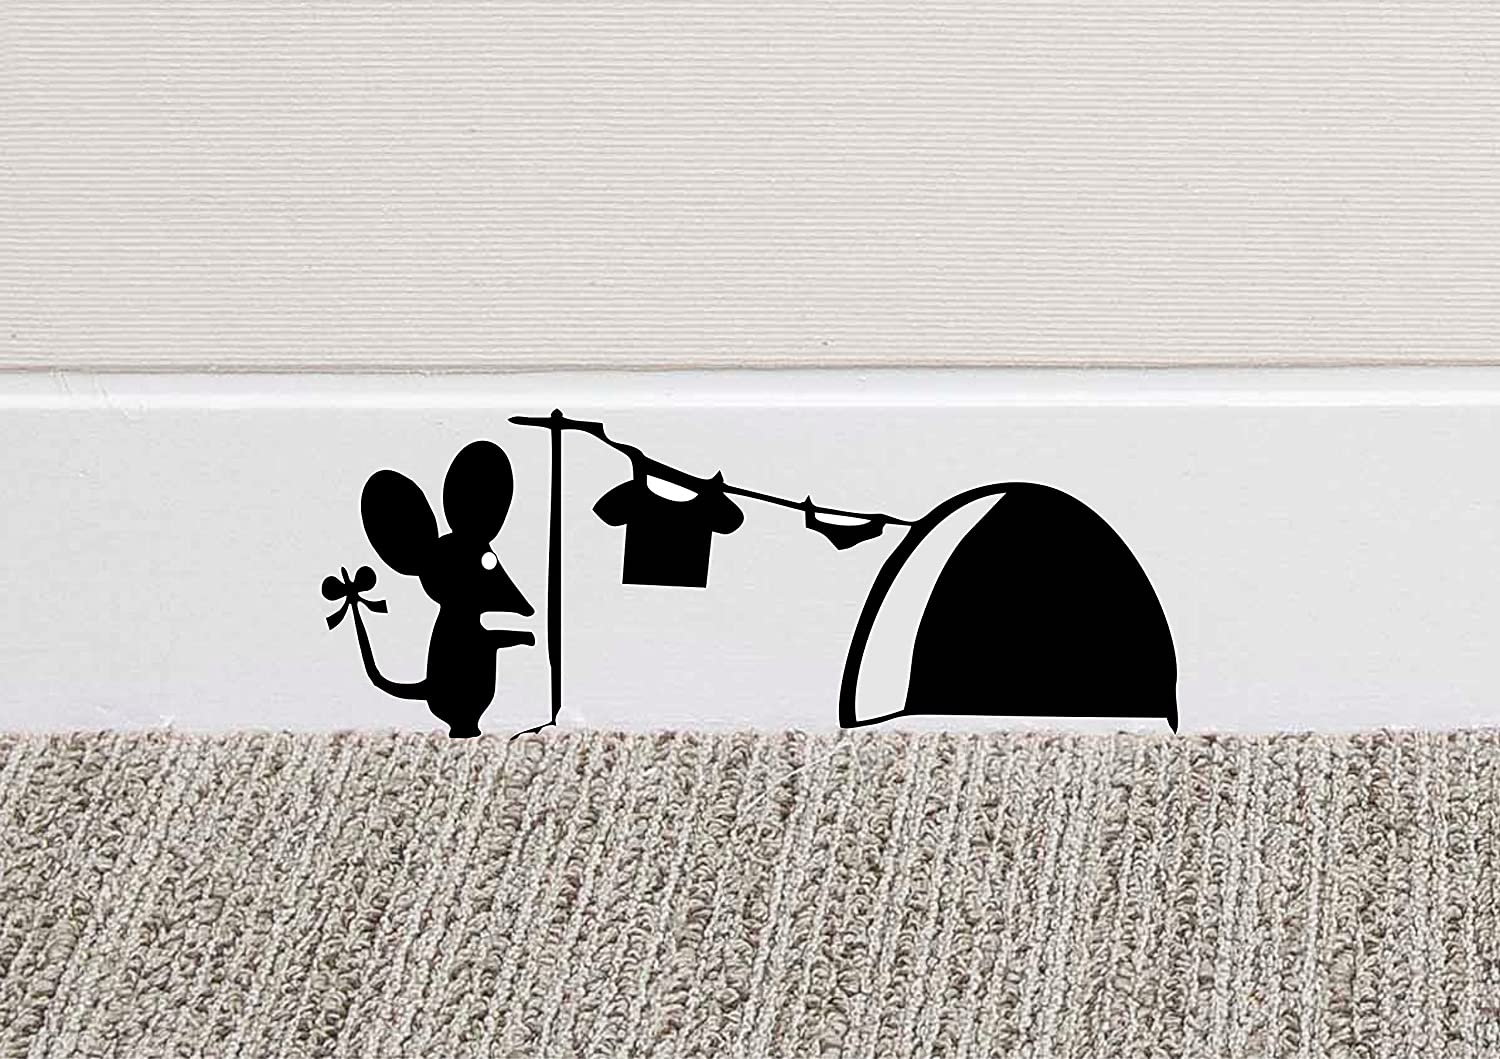 213B Mouse Hole Wall Art Sticker Washing Vinyl Decal Mice Home Skirting Board Funny BC Designs EXPSFD009350